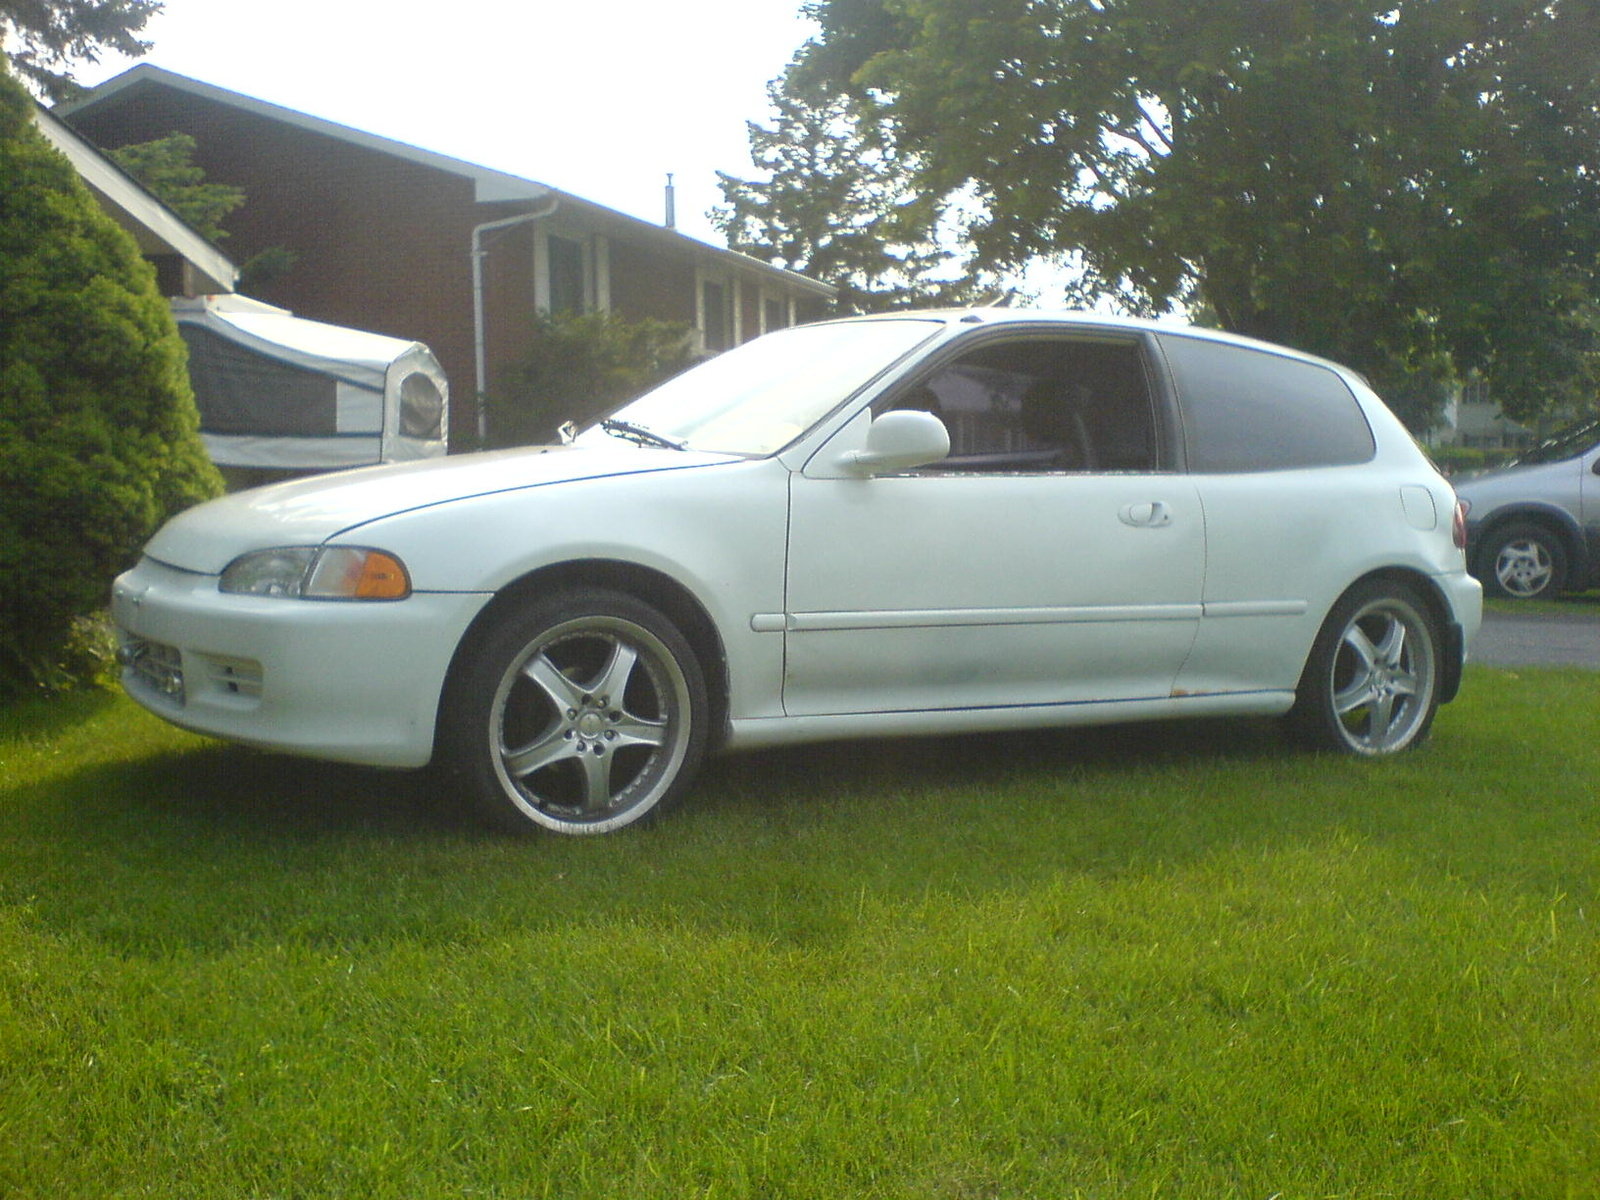 1993 honda civic hatchback - photo #22